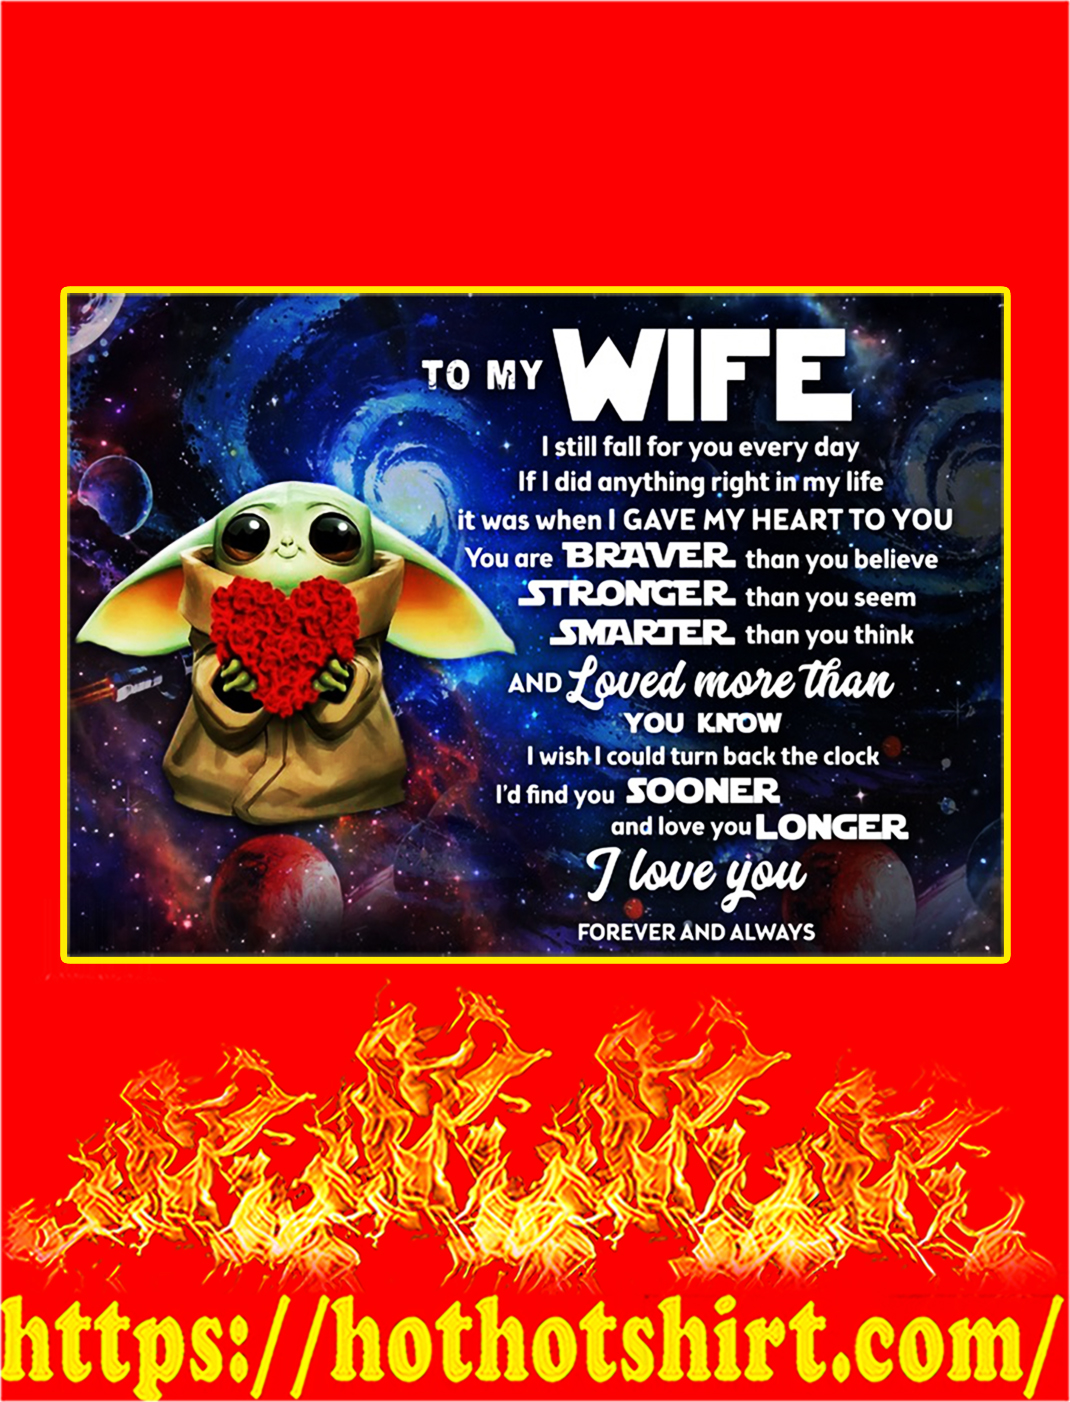 Baby yoda to my wife poster - A1